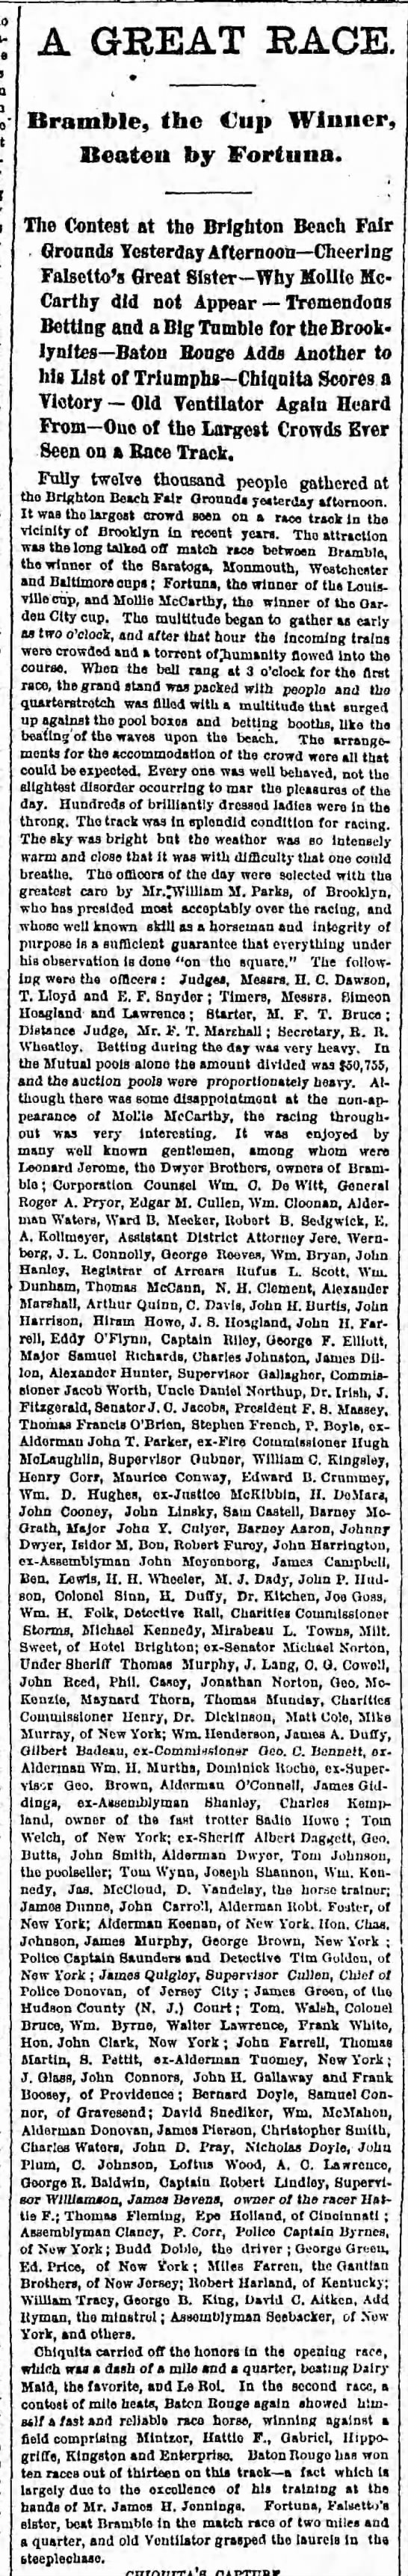 Saturday, August 30, 1879 - Page 2 - A GREAT RACE. Bramble, the Cup Winner, Beaten...